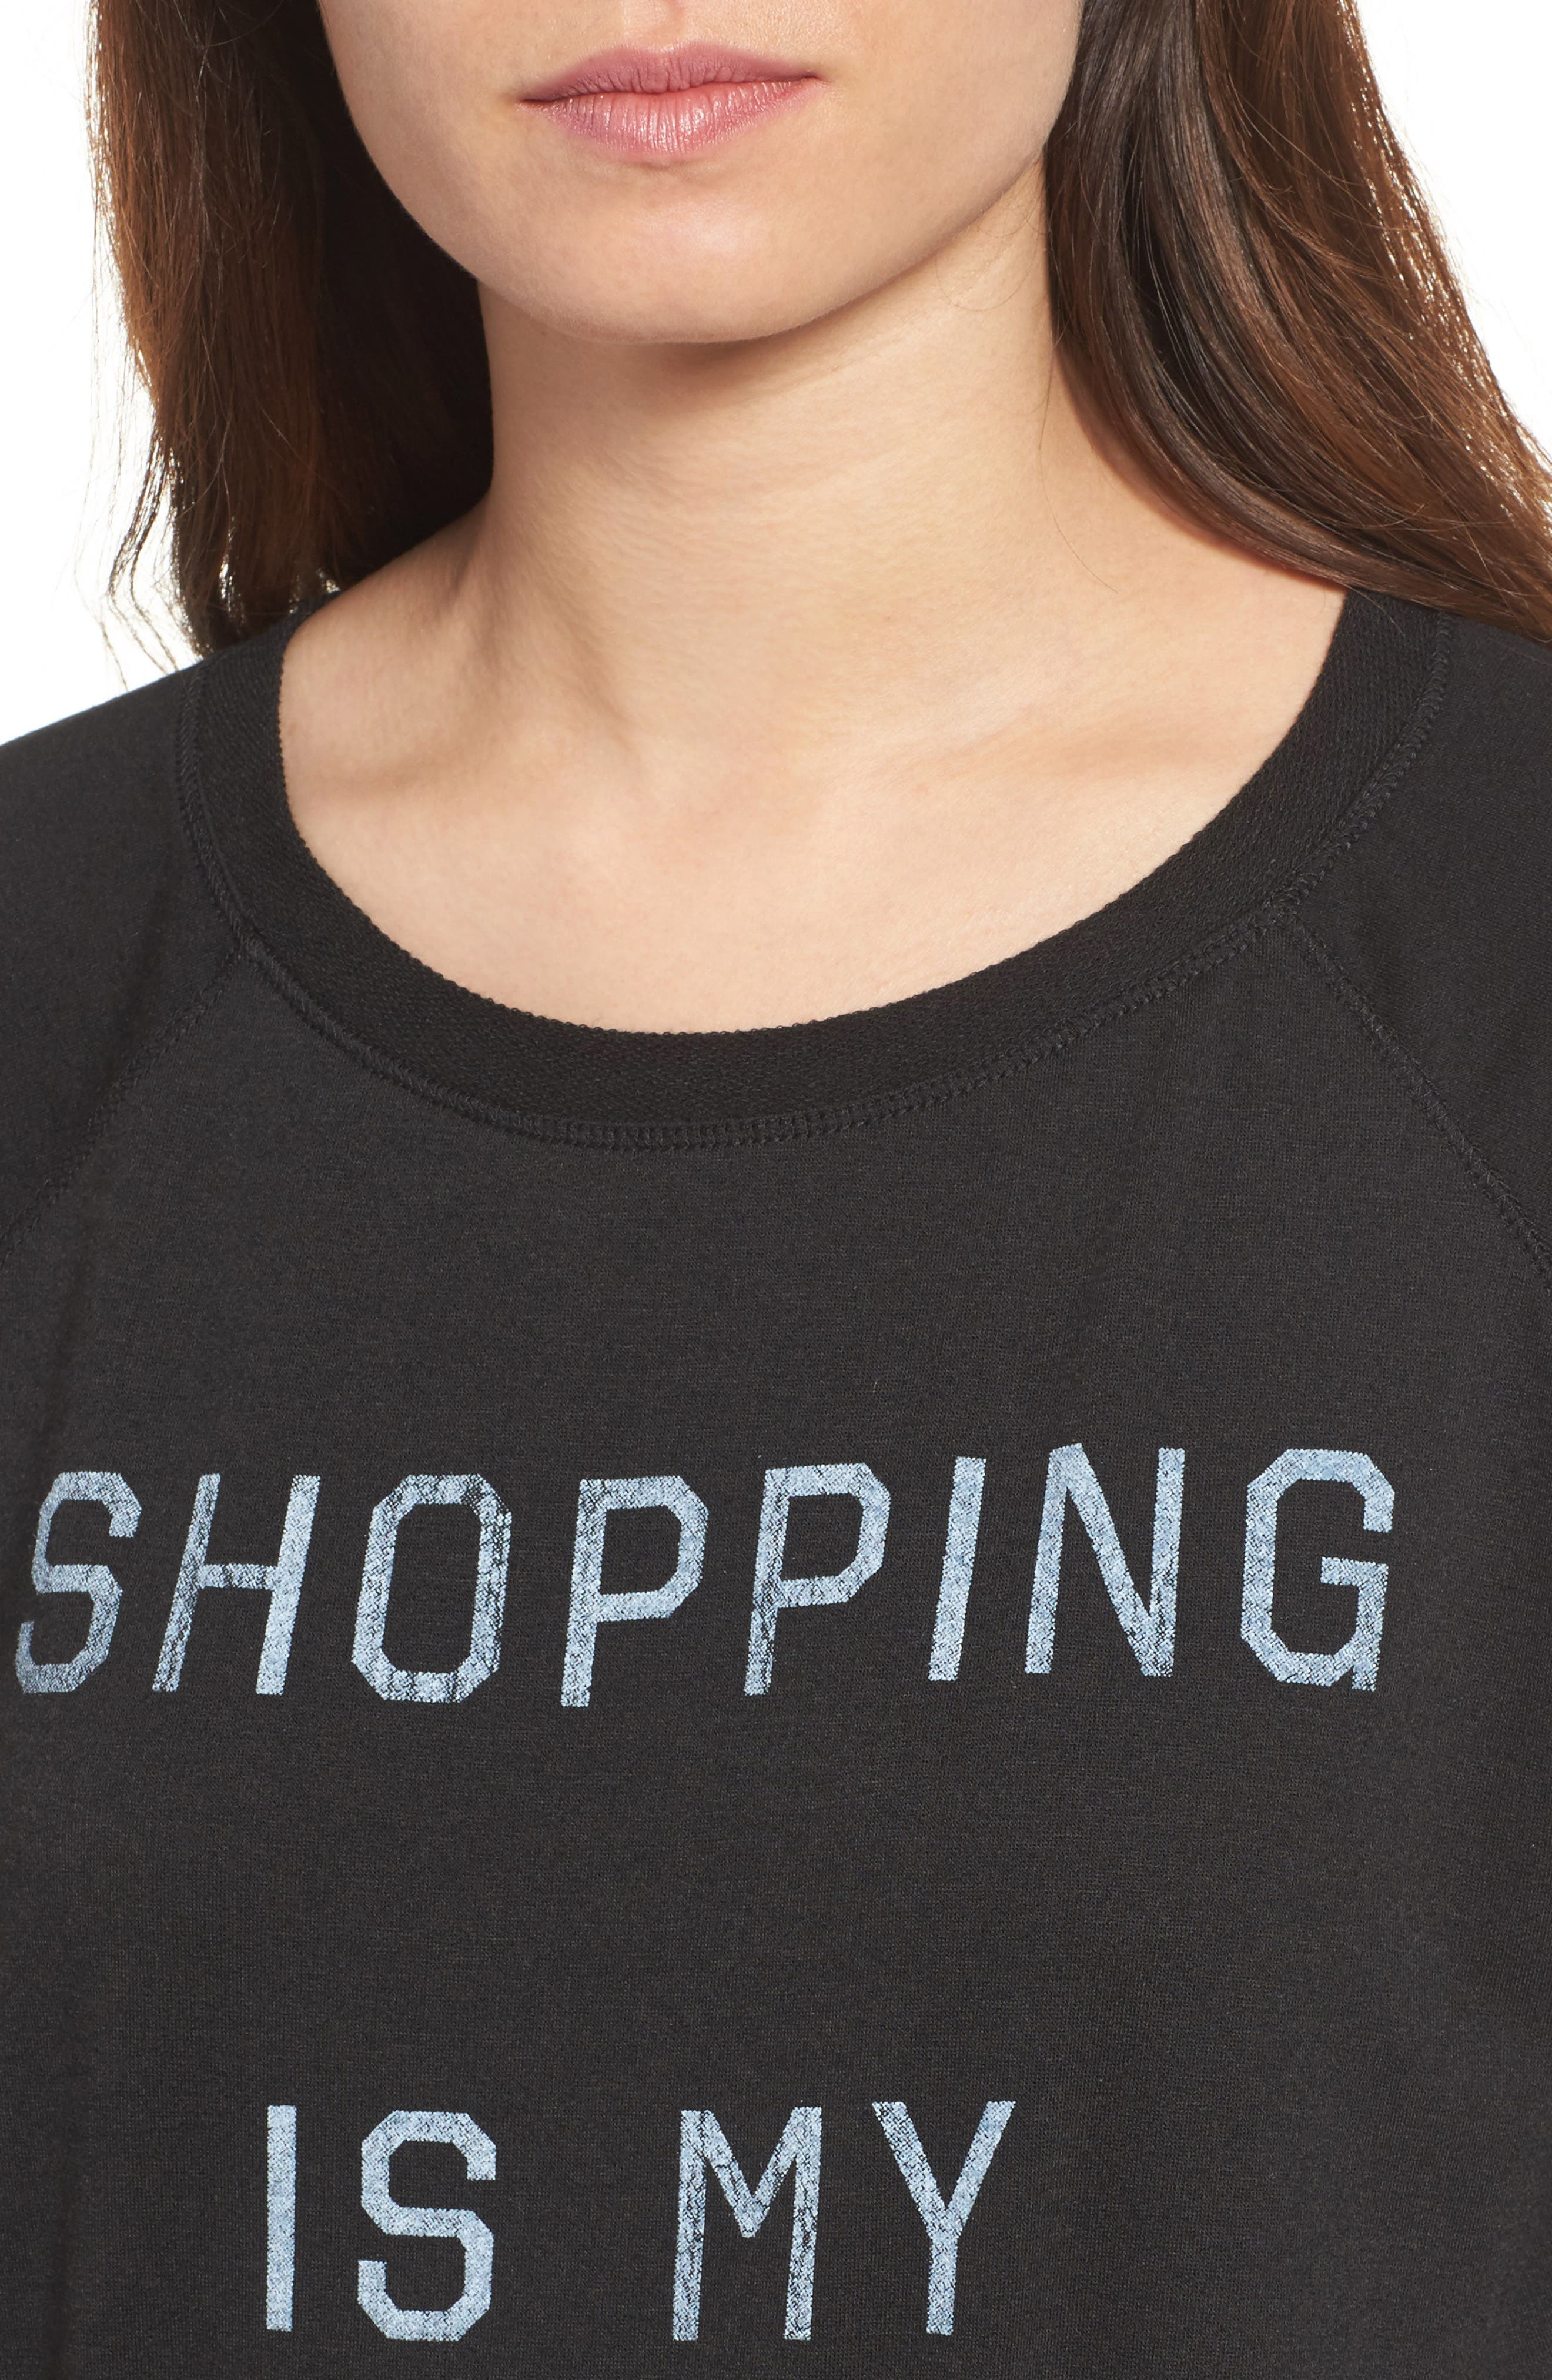 Shopping is My Cardio Tee,                             Alternate thumbnail 4, color,